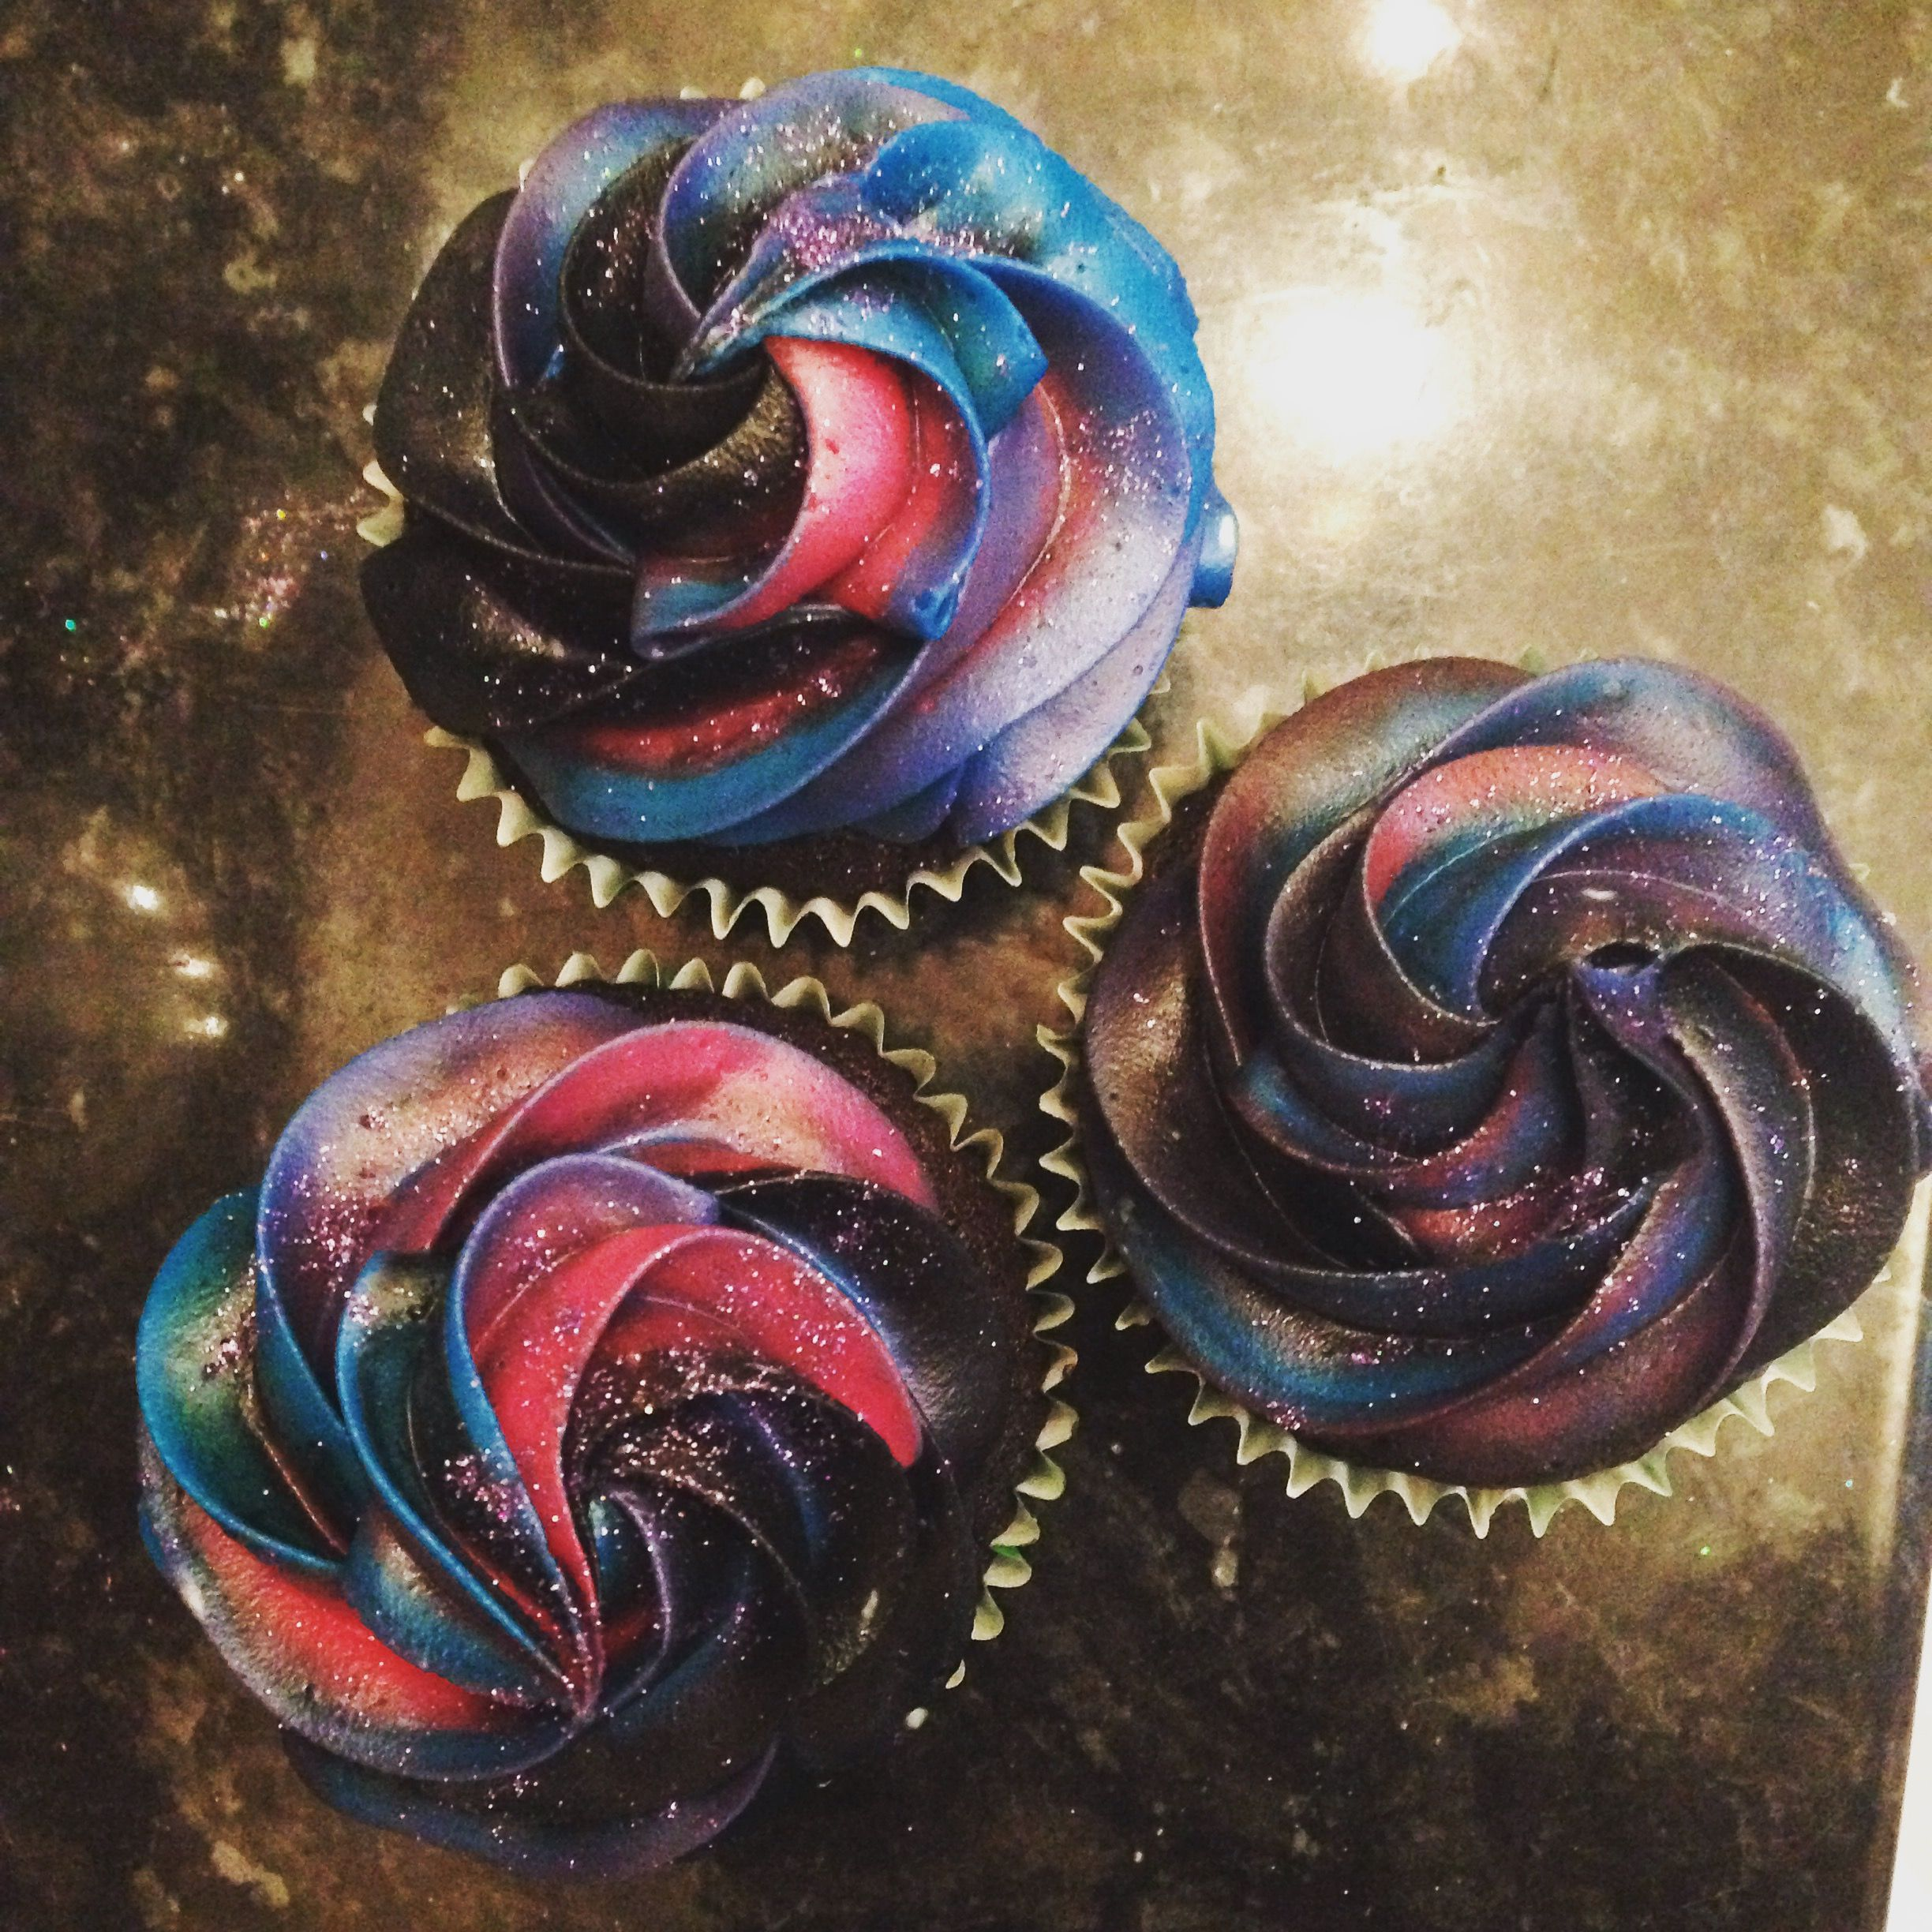 How to create cosmic galaxy effect frosting for cupcakes for Cosmic pattern clothing